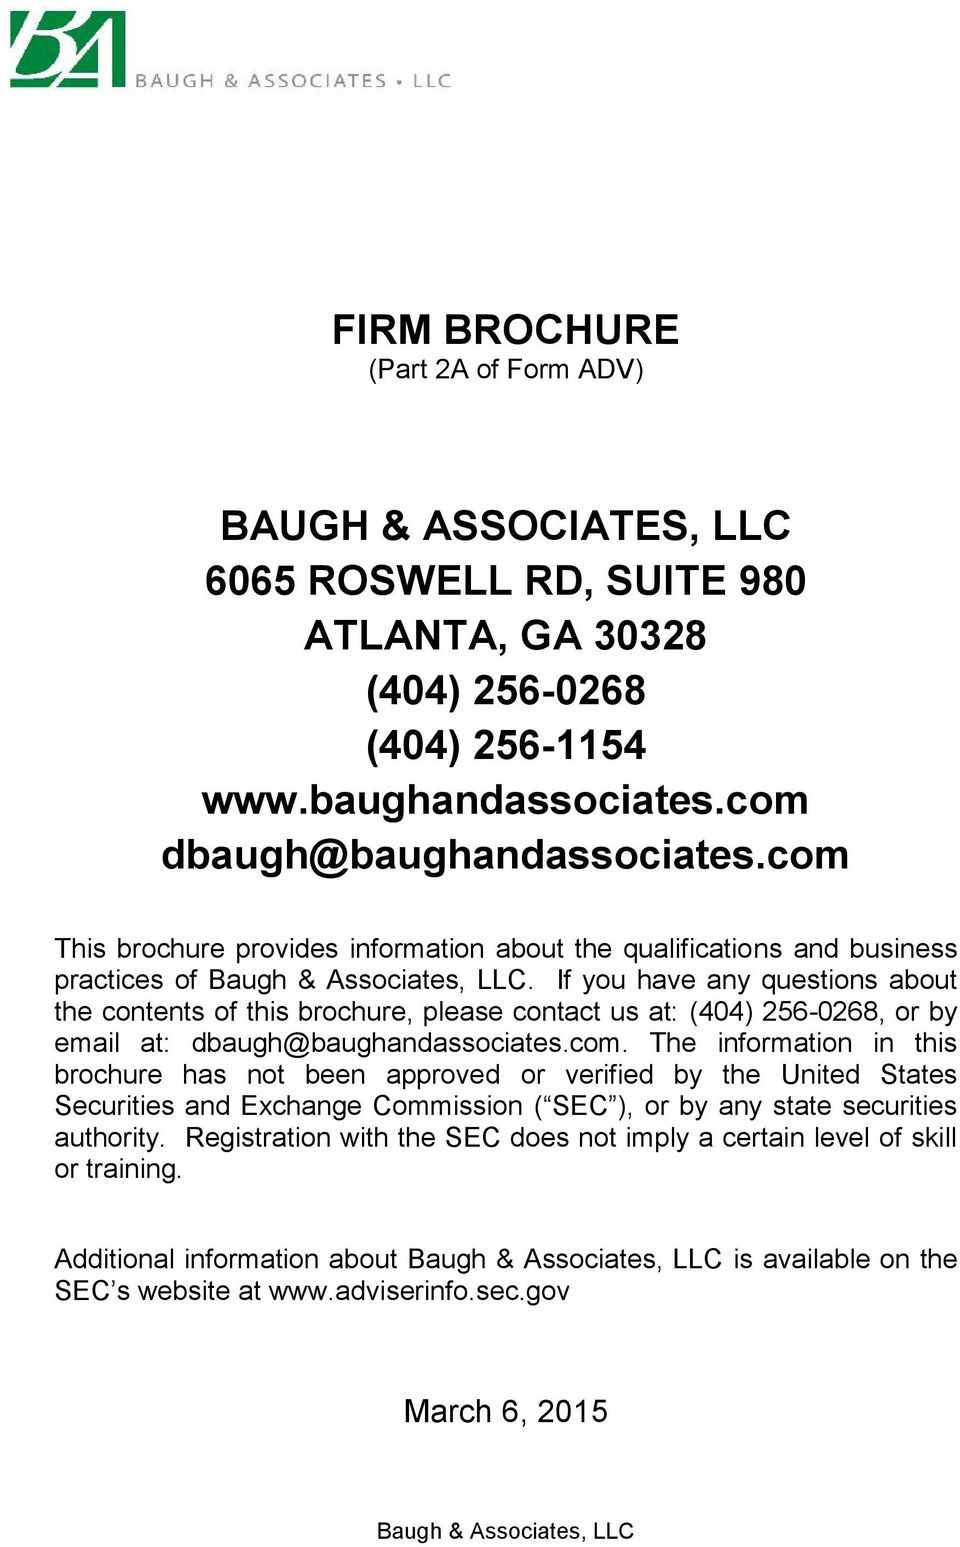 If you have any questions about the contents of this brochure, please contact us at: (404) 256-0268, or by email at: dbaugh@baughandassociates.com.